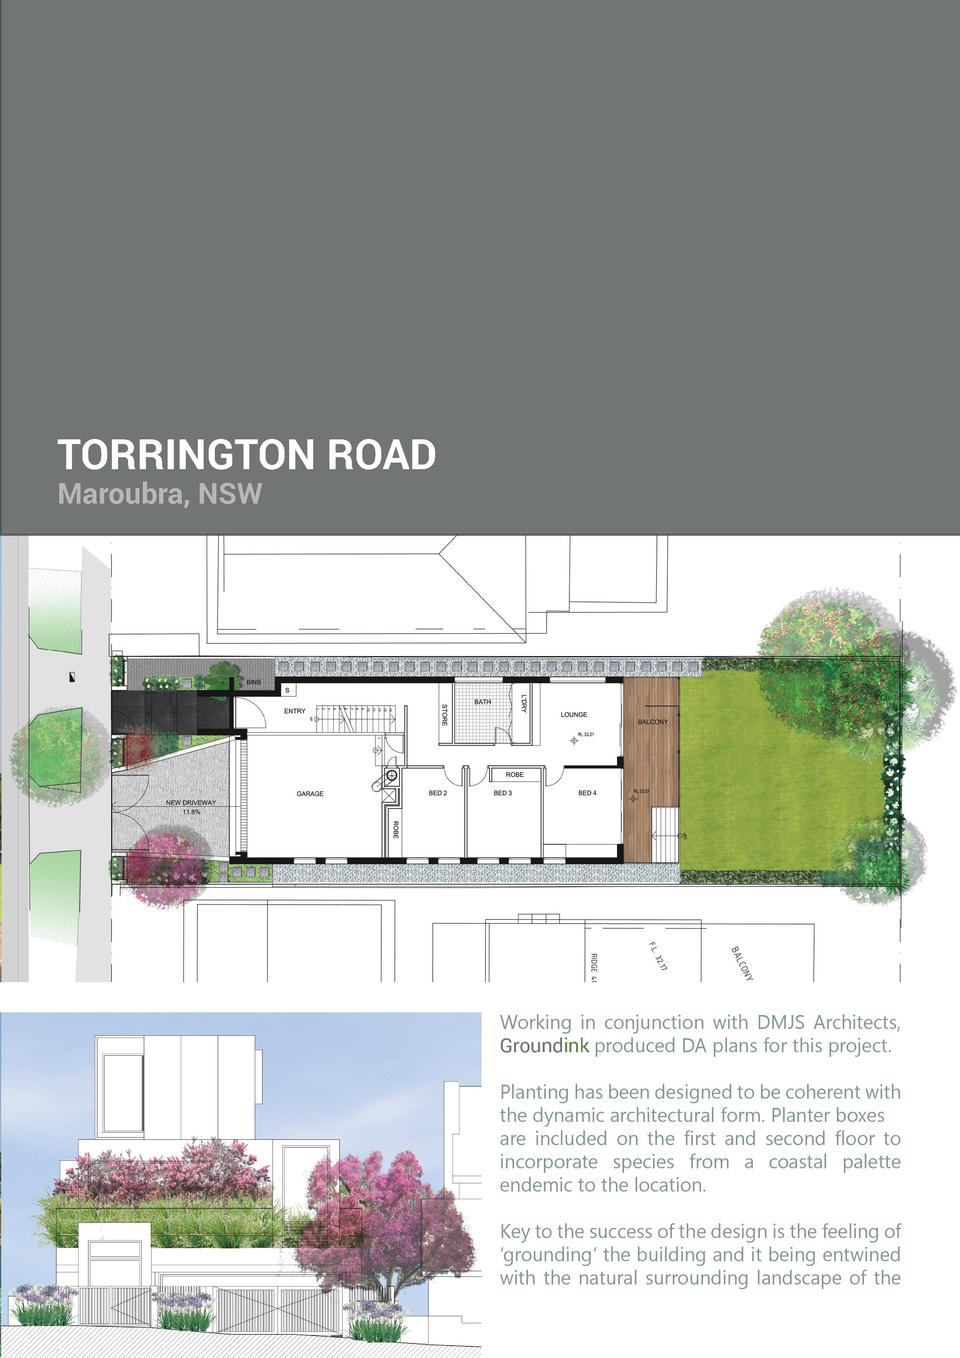 TORRINGTON ROAD Maroubra, NSW  Working in conjunction with DMJS Architects, Groundink produced DA plans for this project. ...